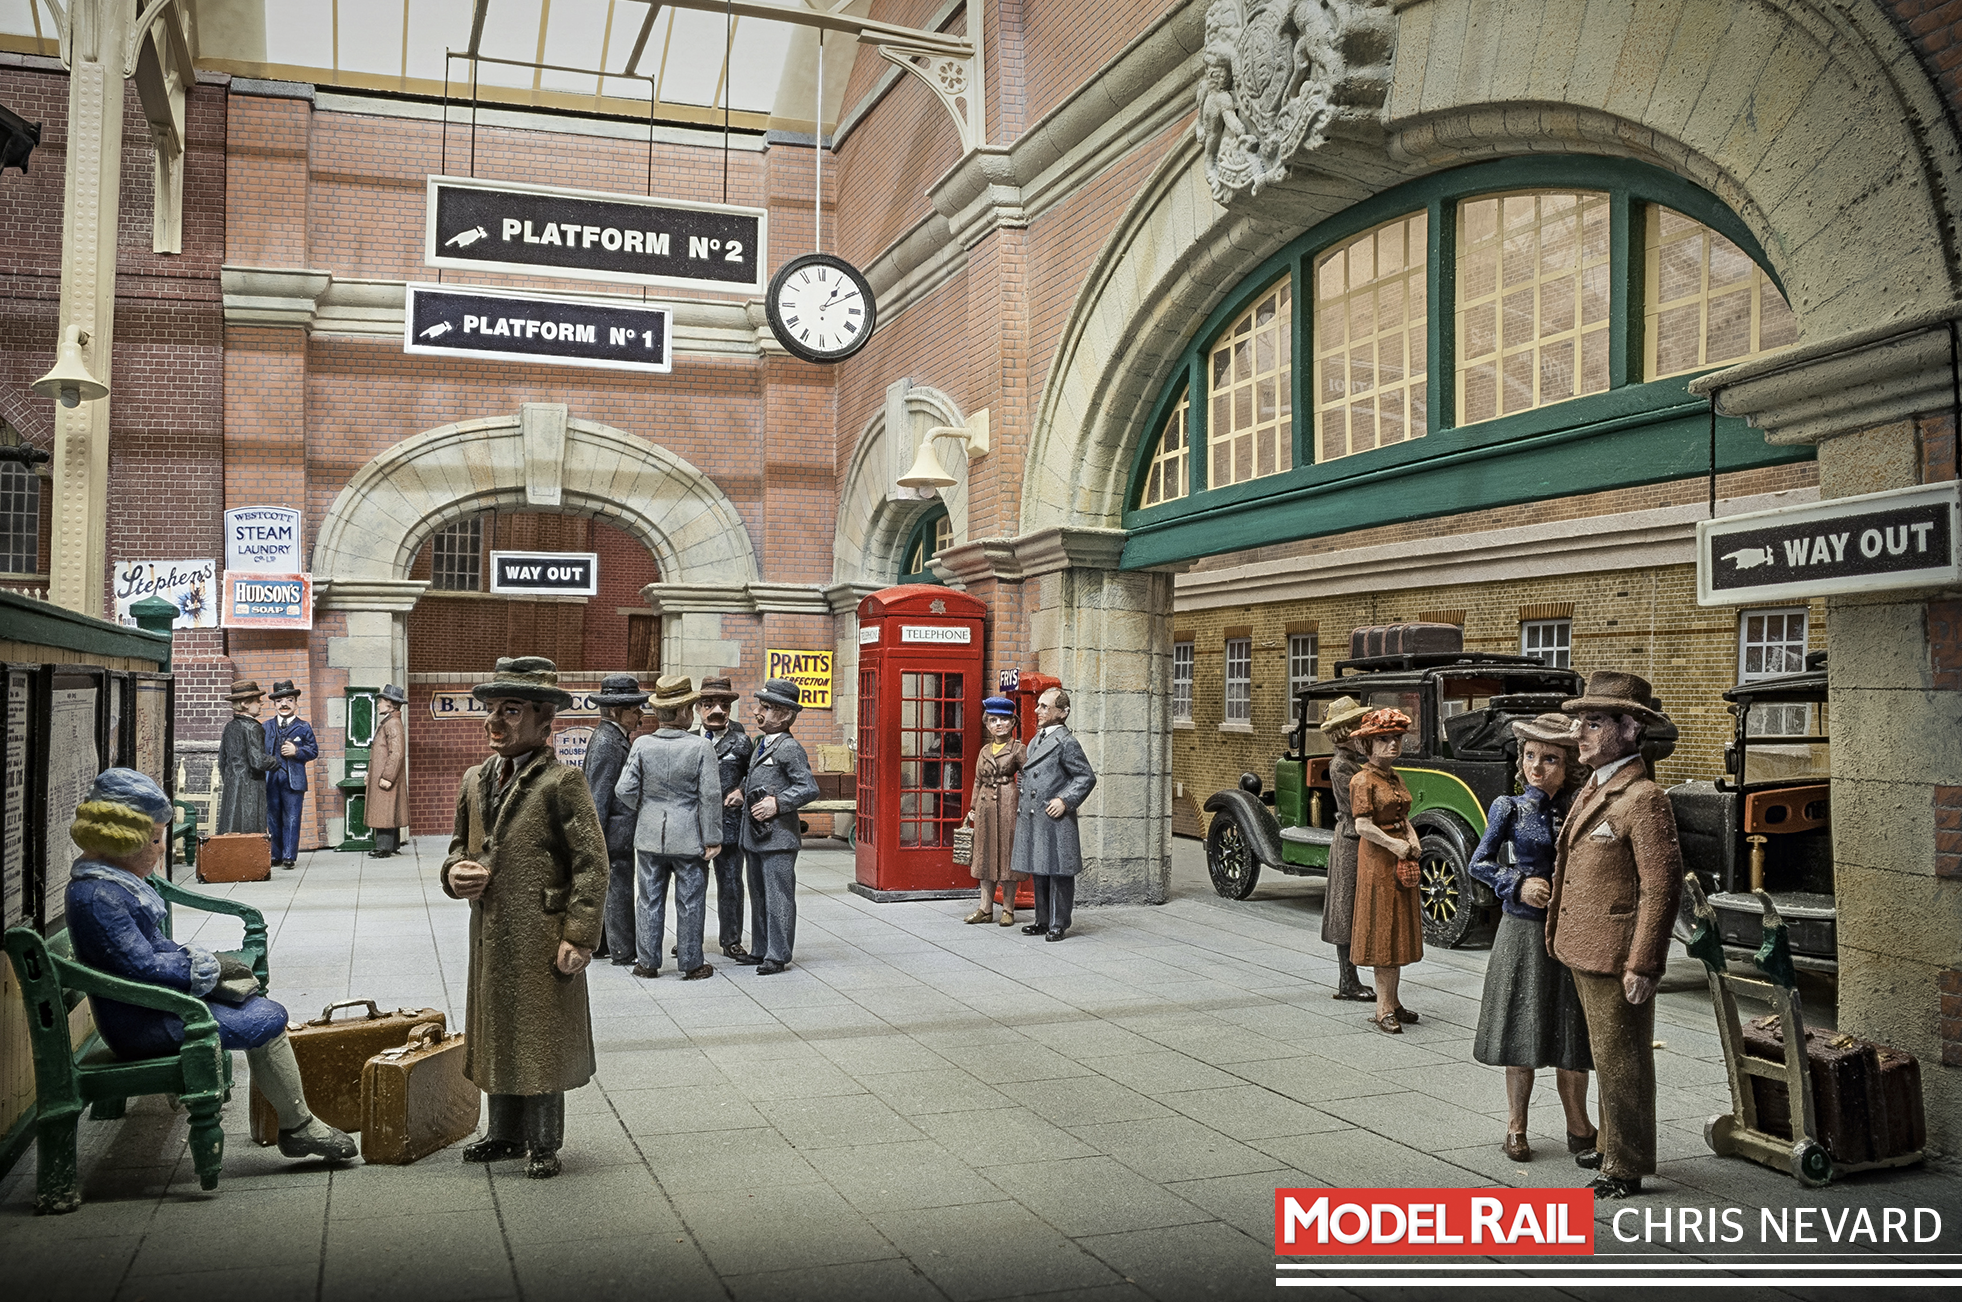 Paul's attention to detail when positioning figures is paramount in conveying a realistic scene. The circle of suited gentlemen is a great observation of human behaviour. CHRIS NEVARD